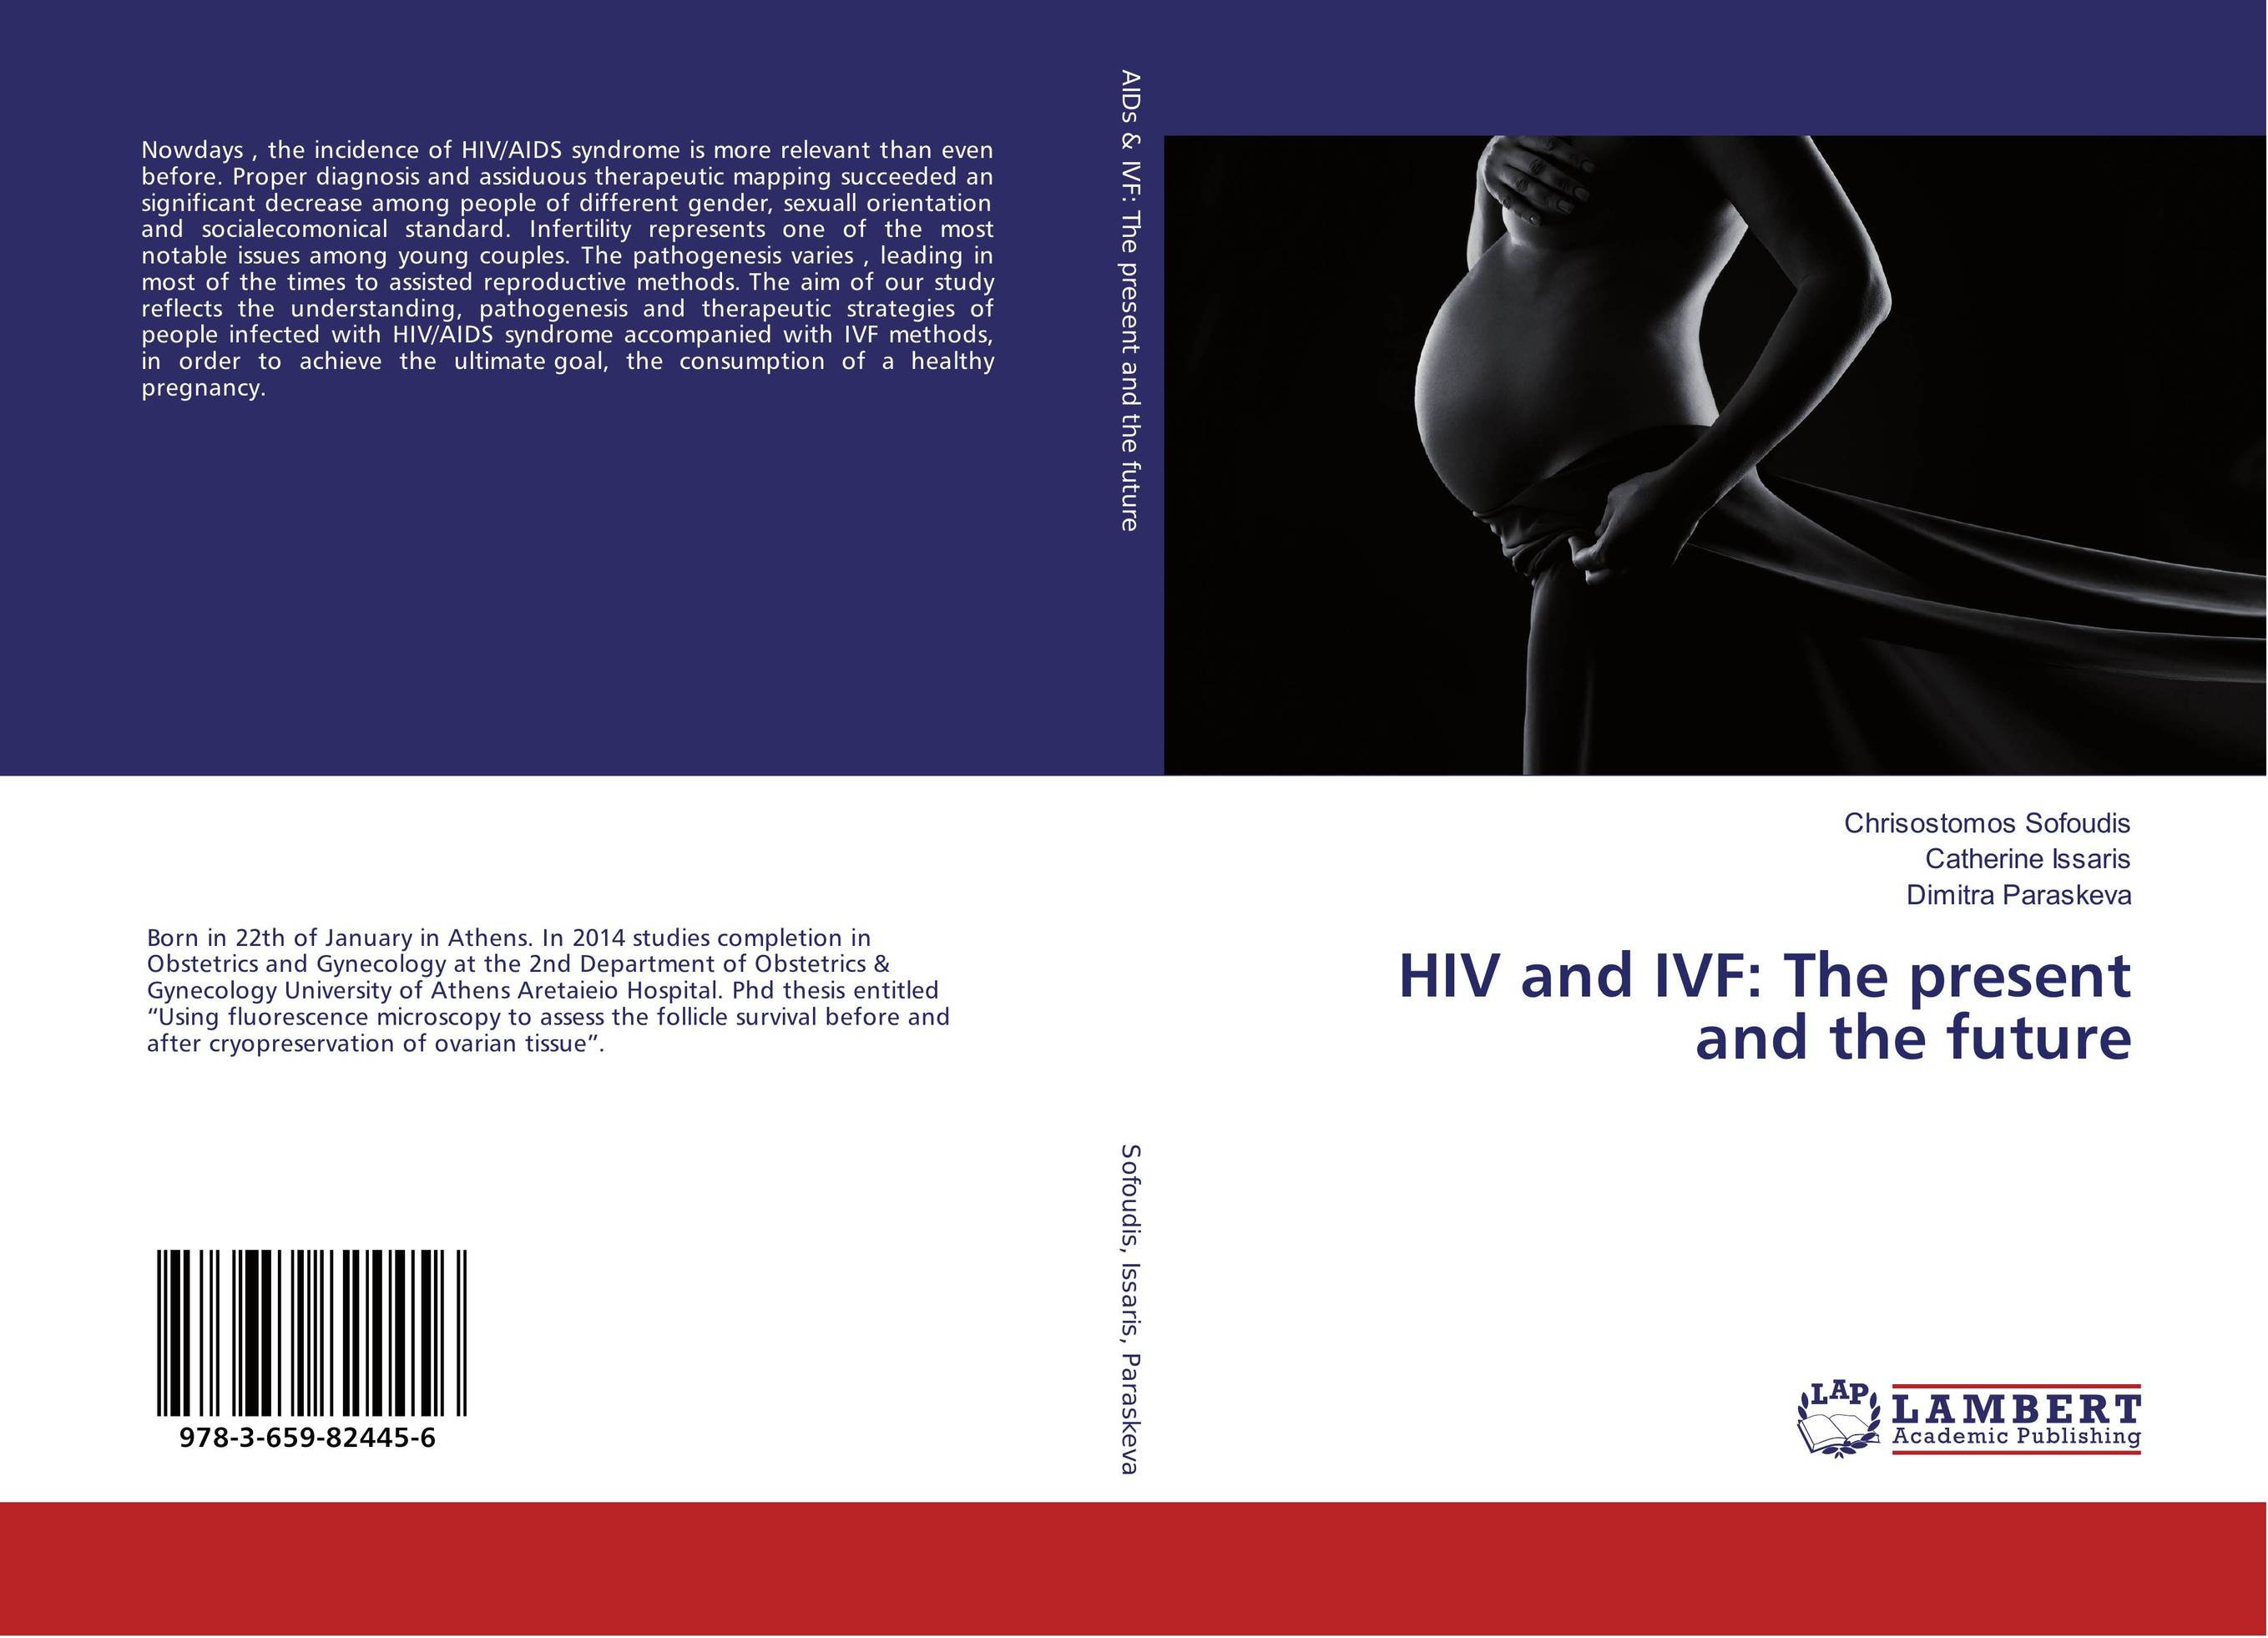 HIV and IVF: The present and the future therapeutic management of infertility in cattle